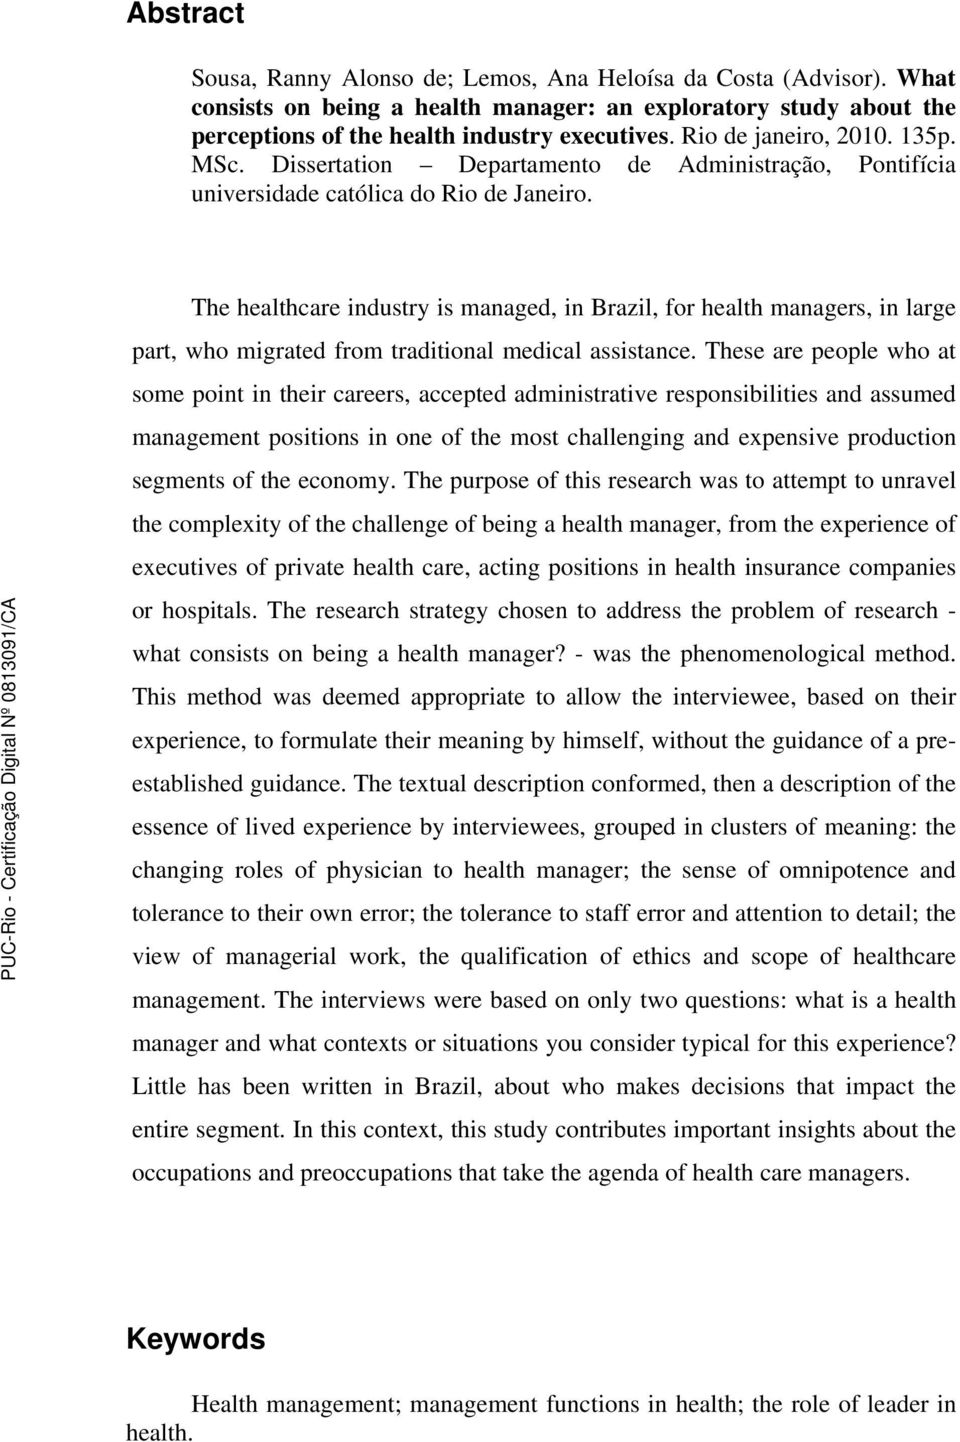 The healthcare industry is managed, in Brazil, for health managers, in large part, who migrated from traditional medical assistance.